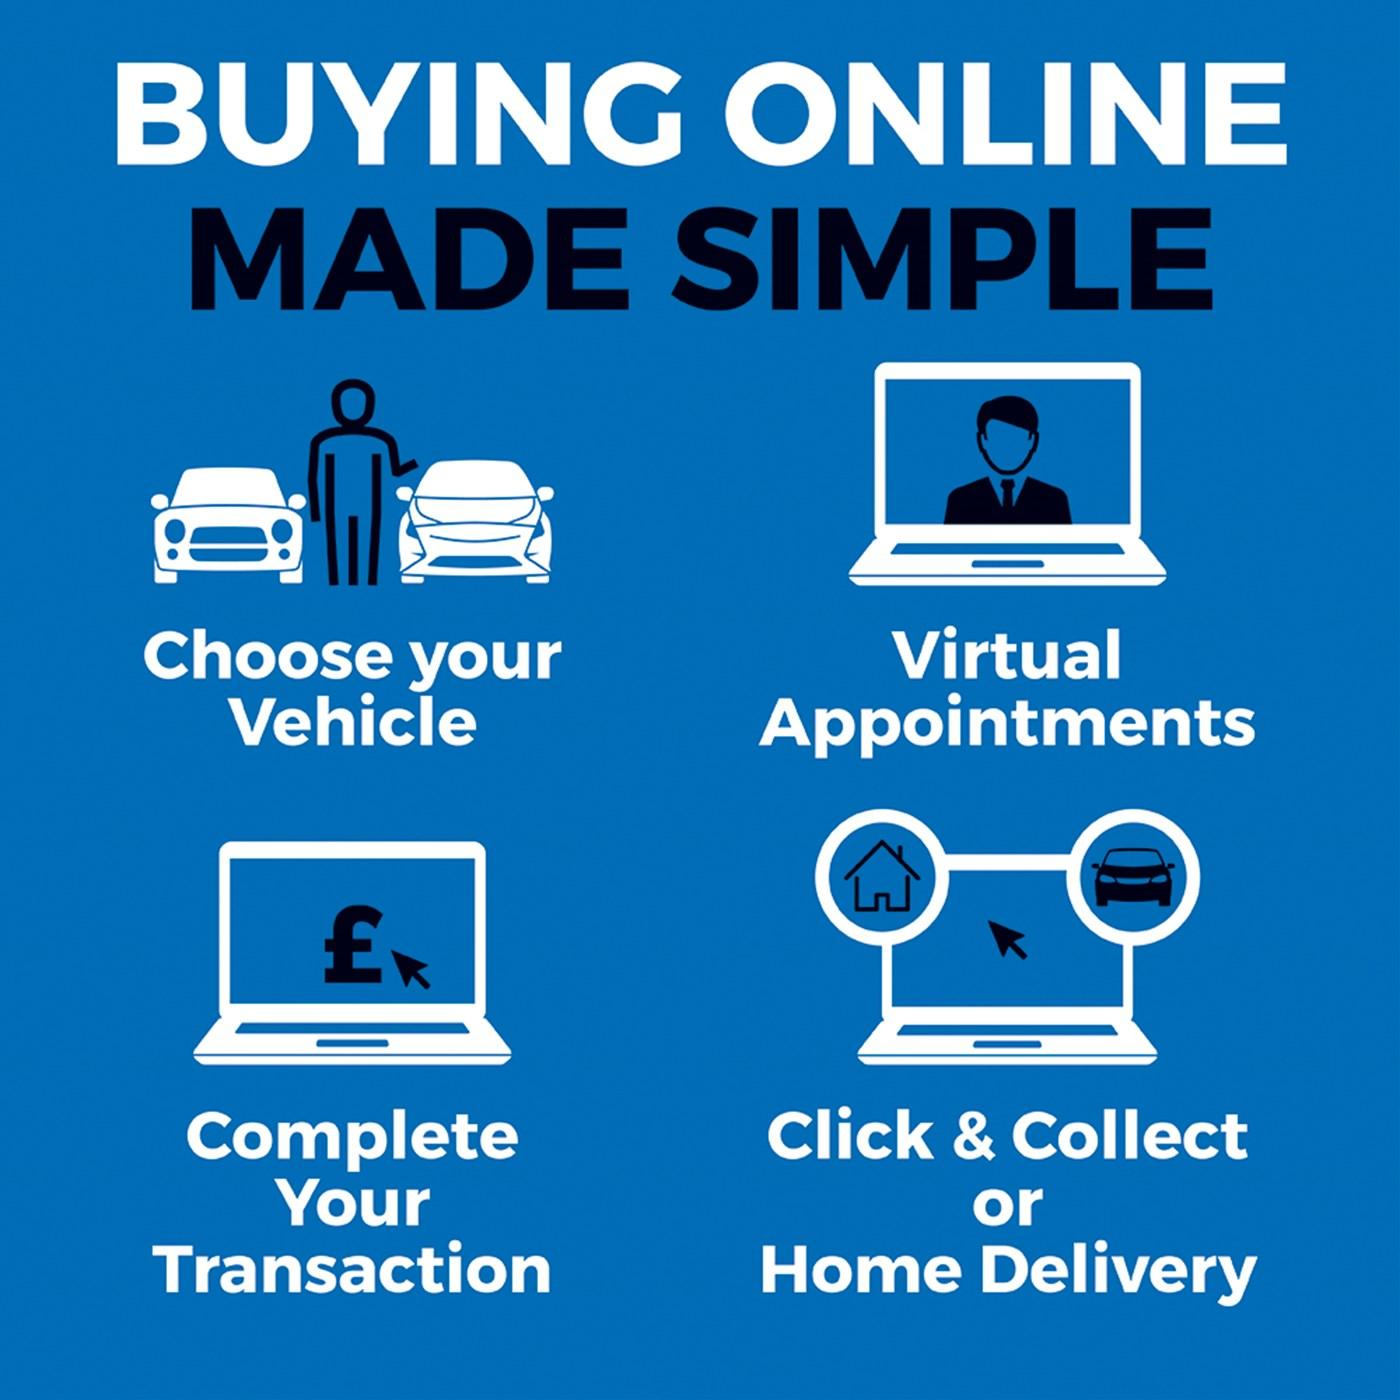 Buying Online Made Simple